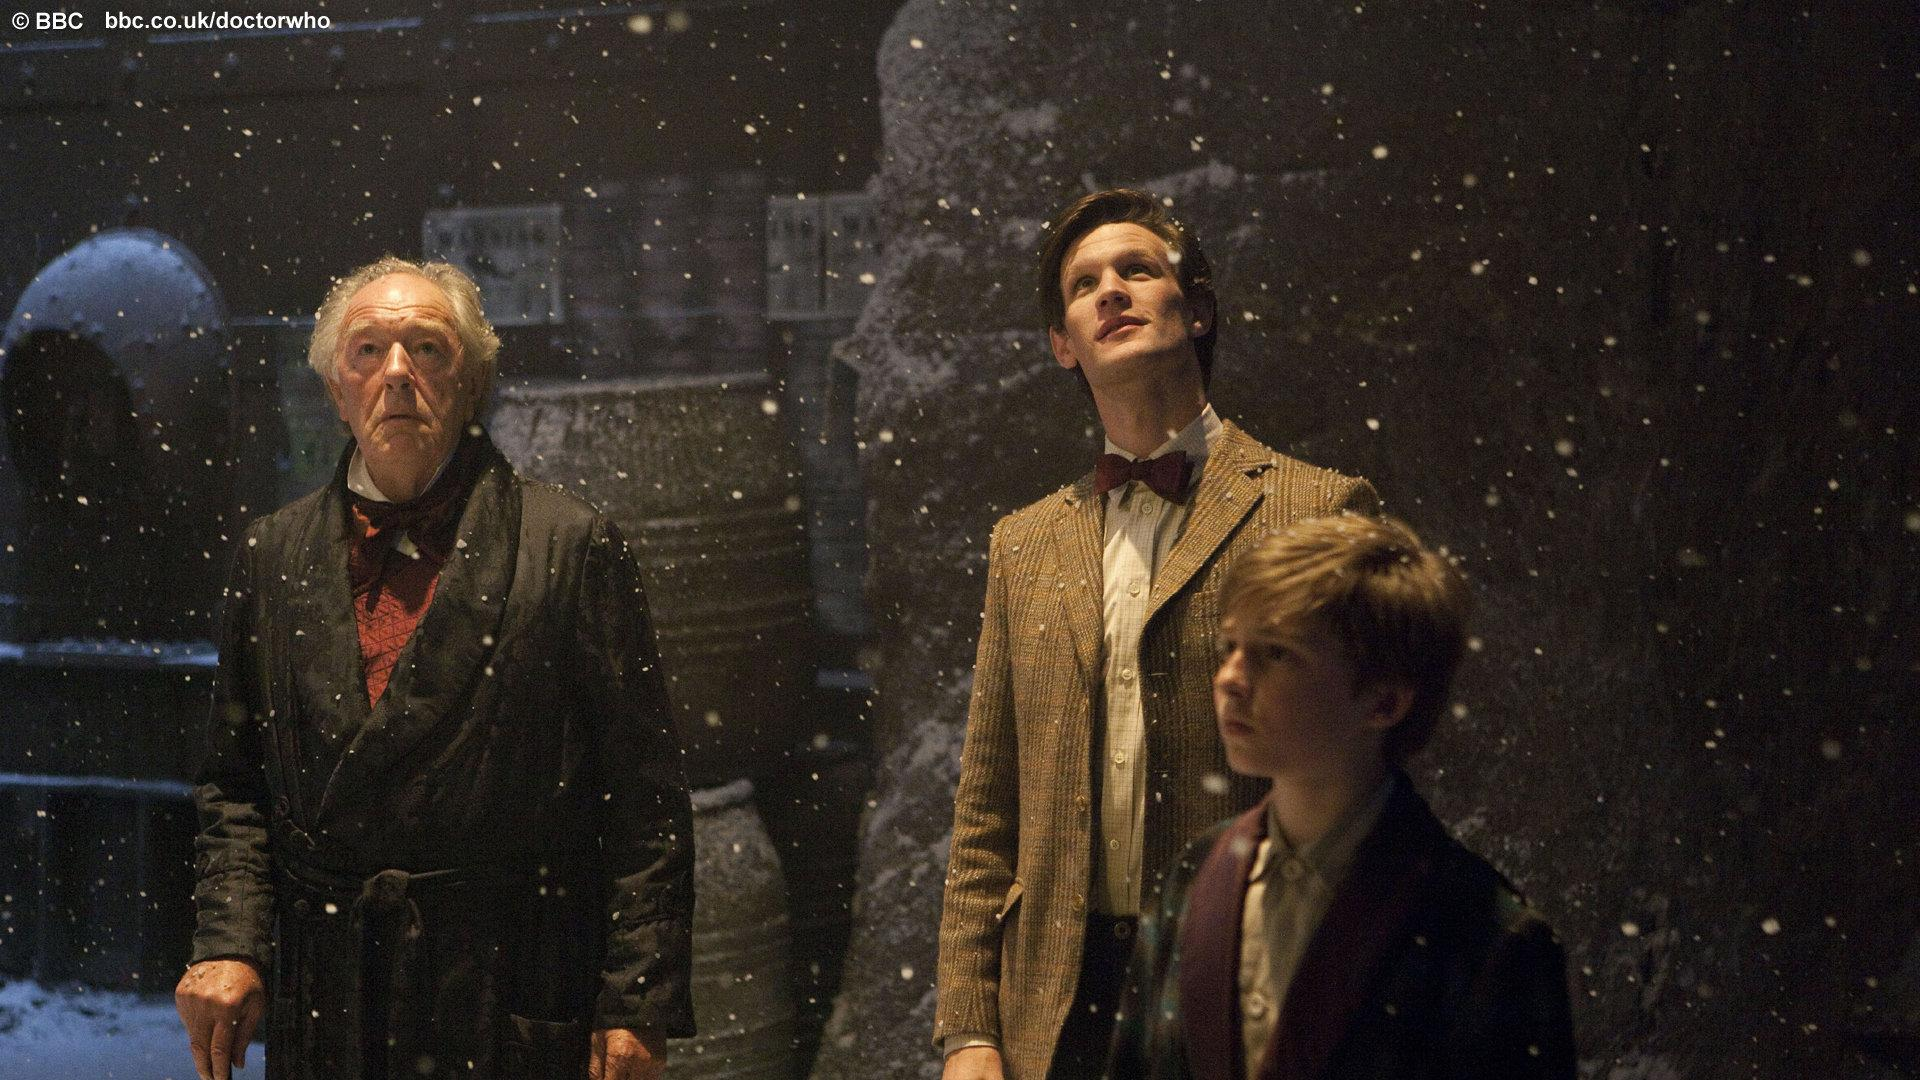 Doctor Who: A Christmas Carol Review | The Lowdown